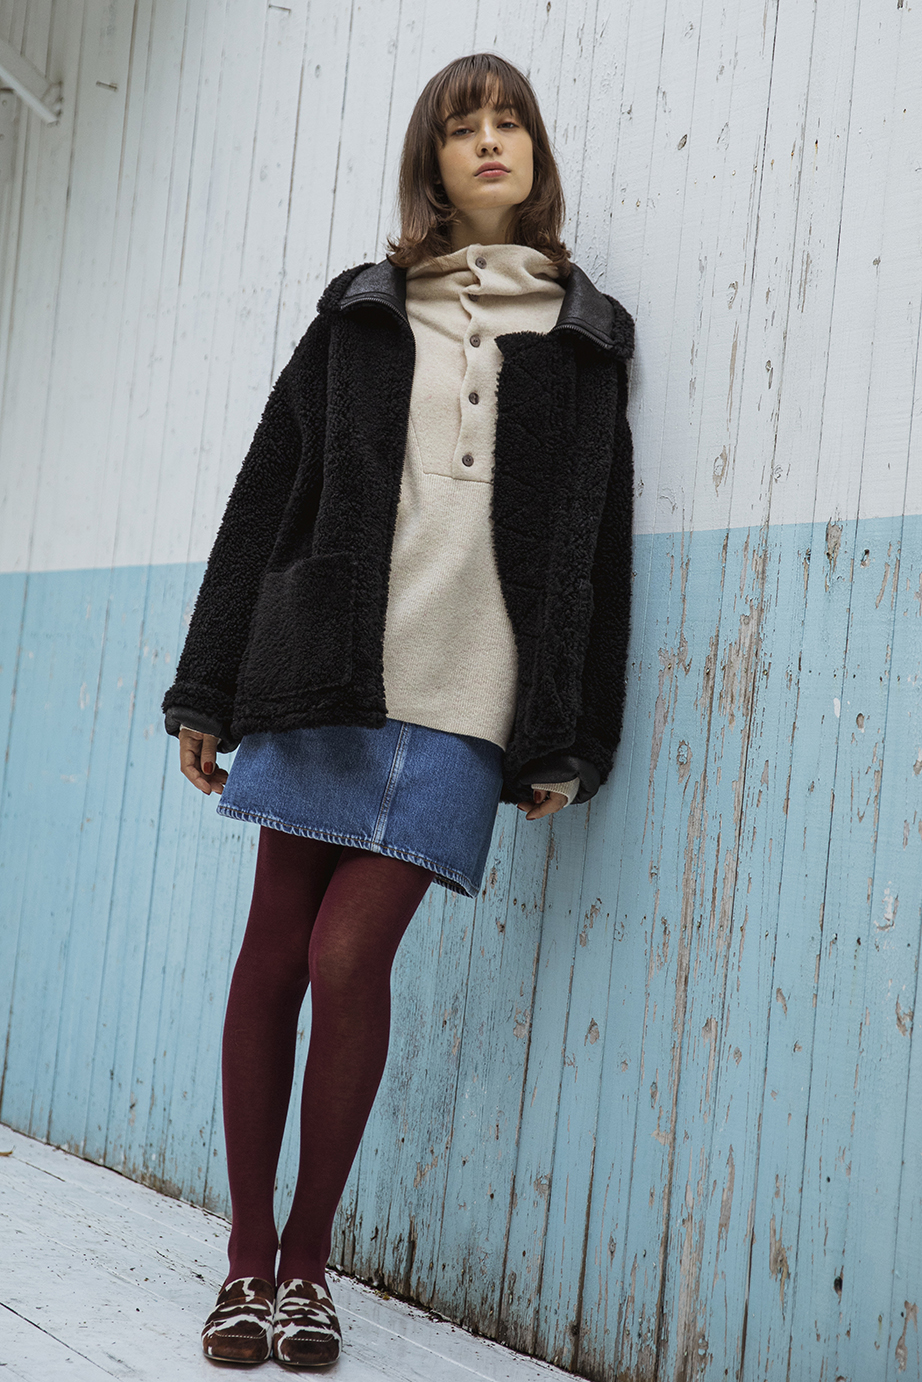 35_1 coat ¥210,000 knit ¥19,000 skirt ¥21,000 tights ¥4,000 shoes ¥31,000